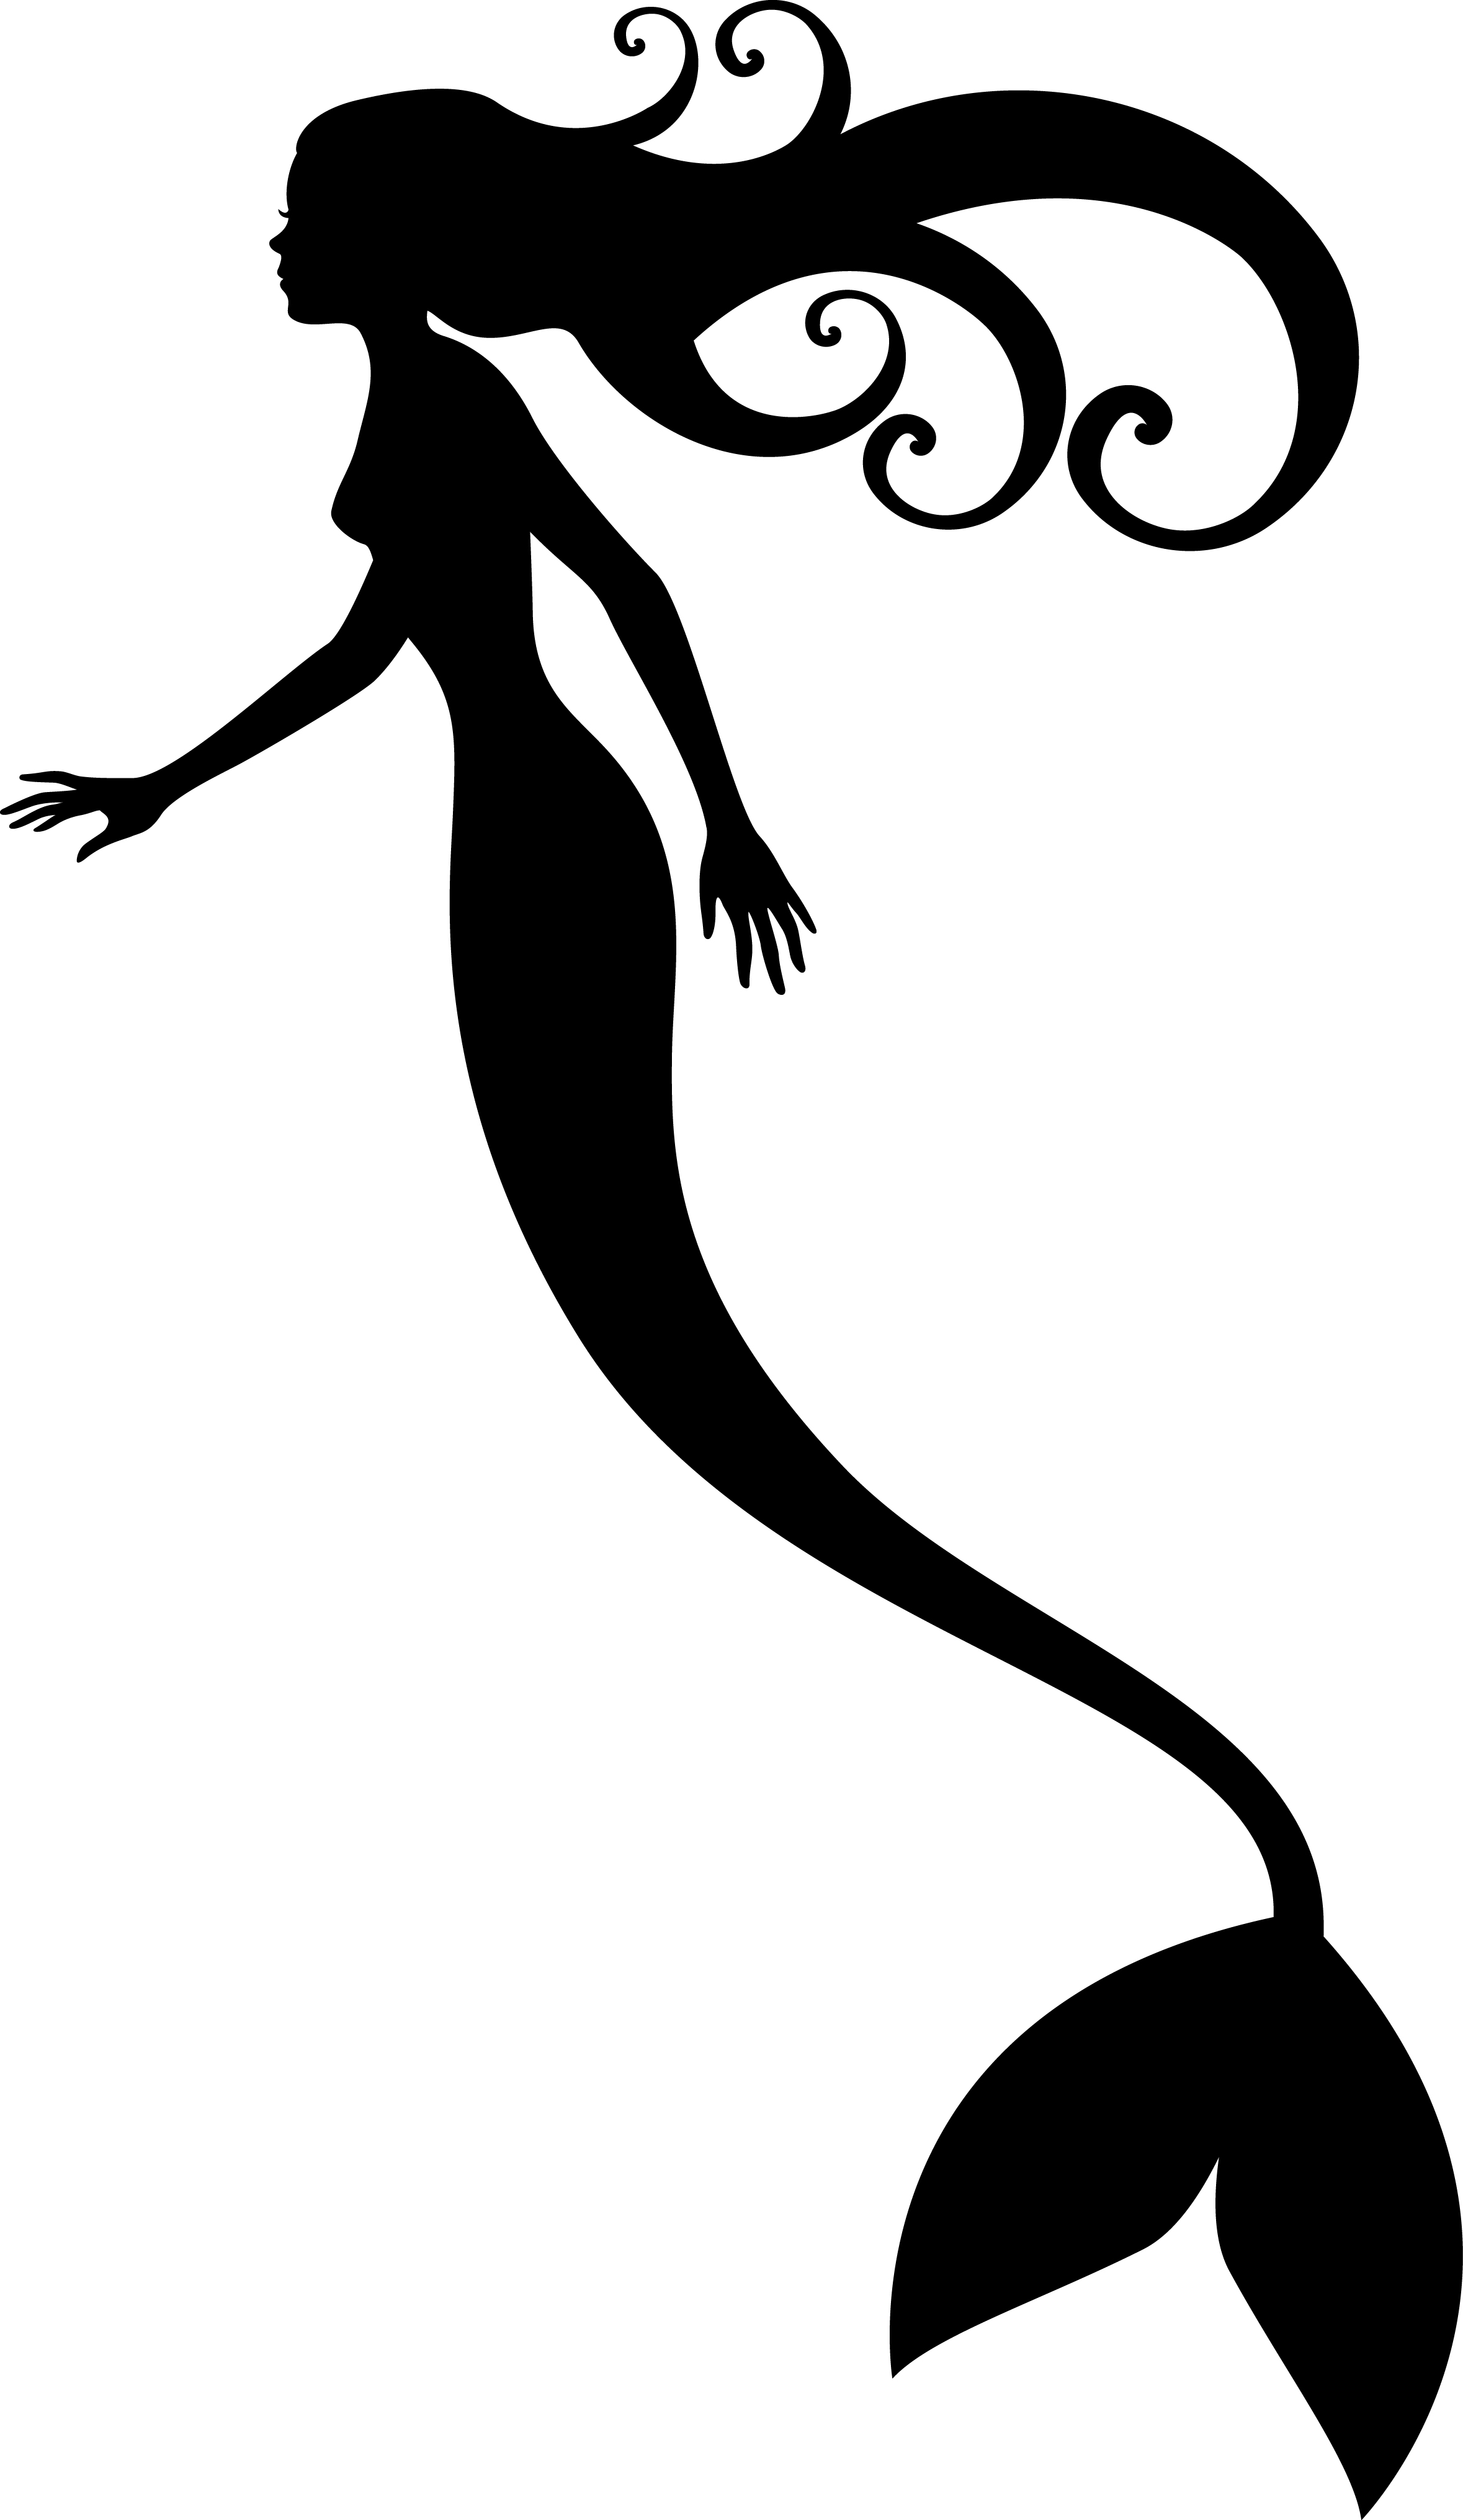 Black Mermaid Silhouette   Clipart Panda   Free Clipart Images